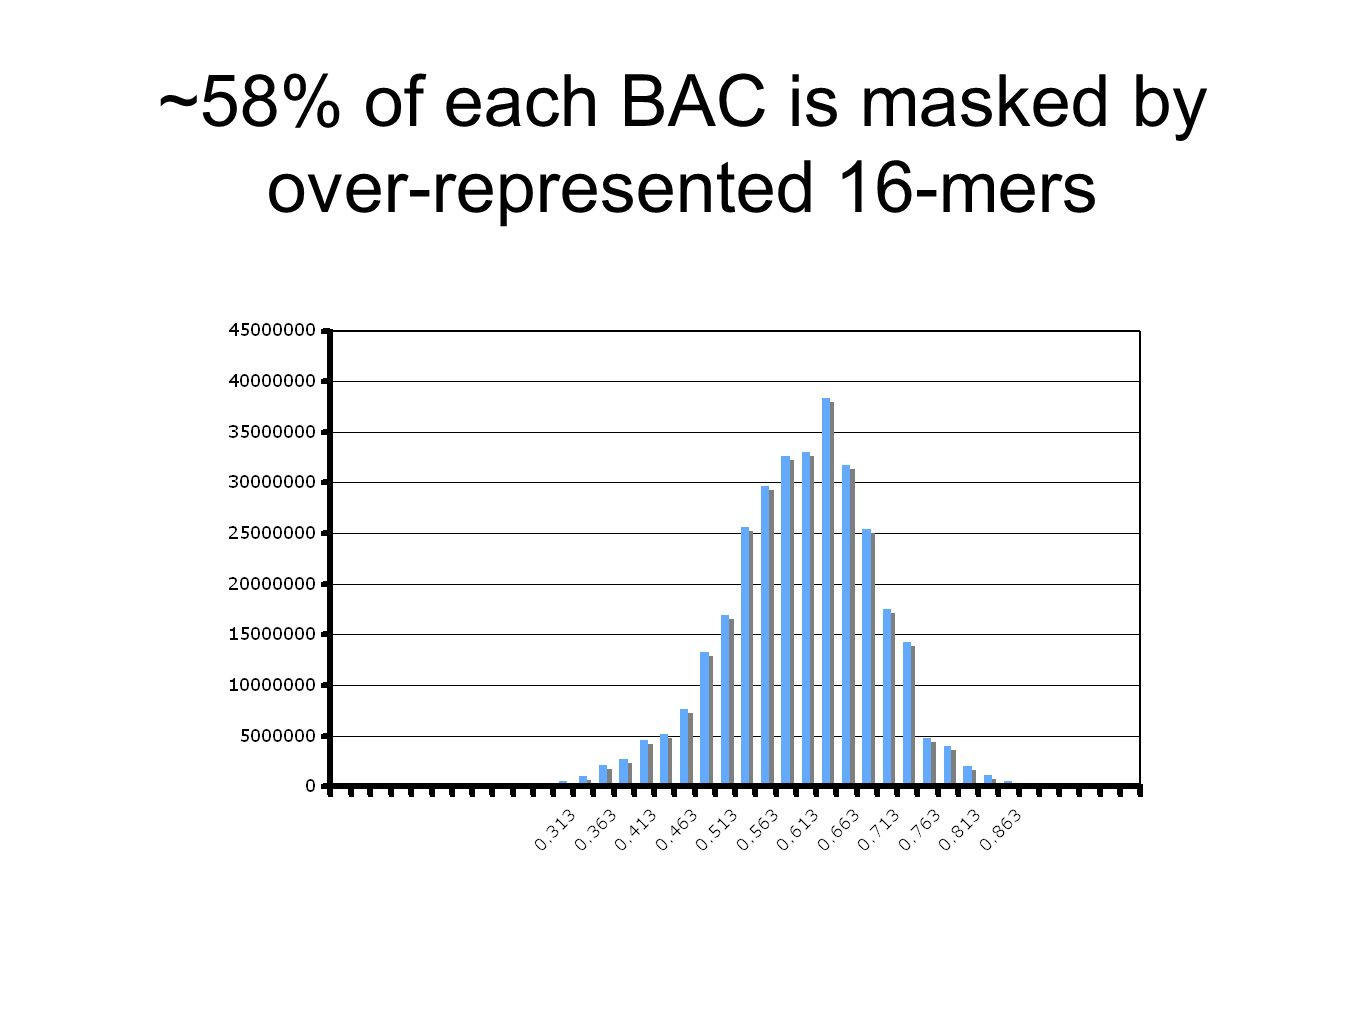 ~58% of each BAC is masked by over-represented 16-mers